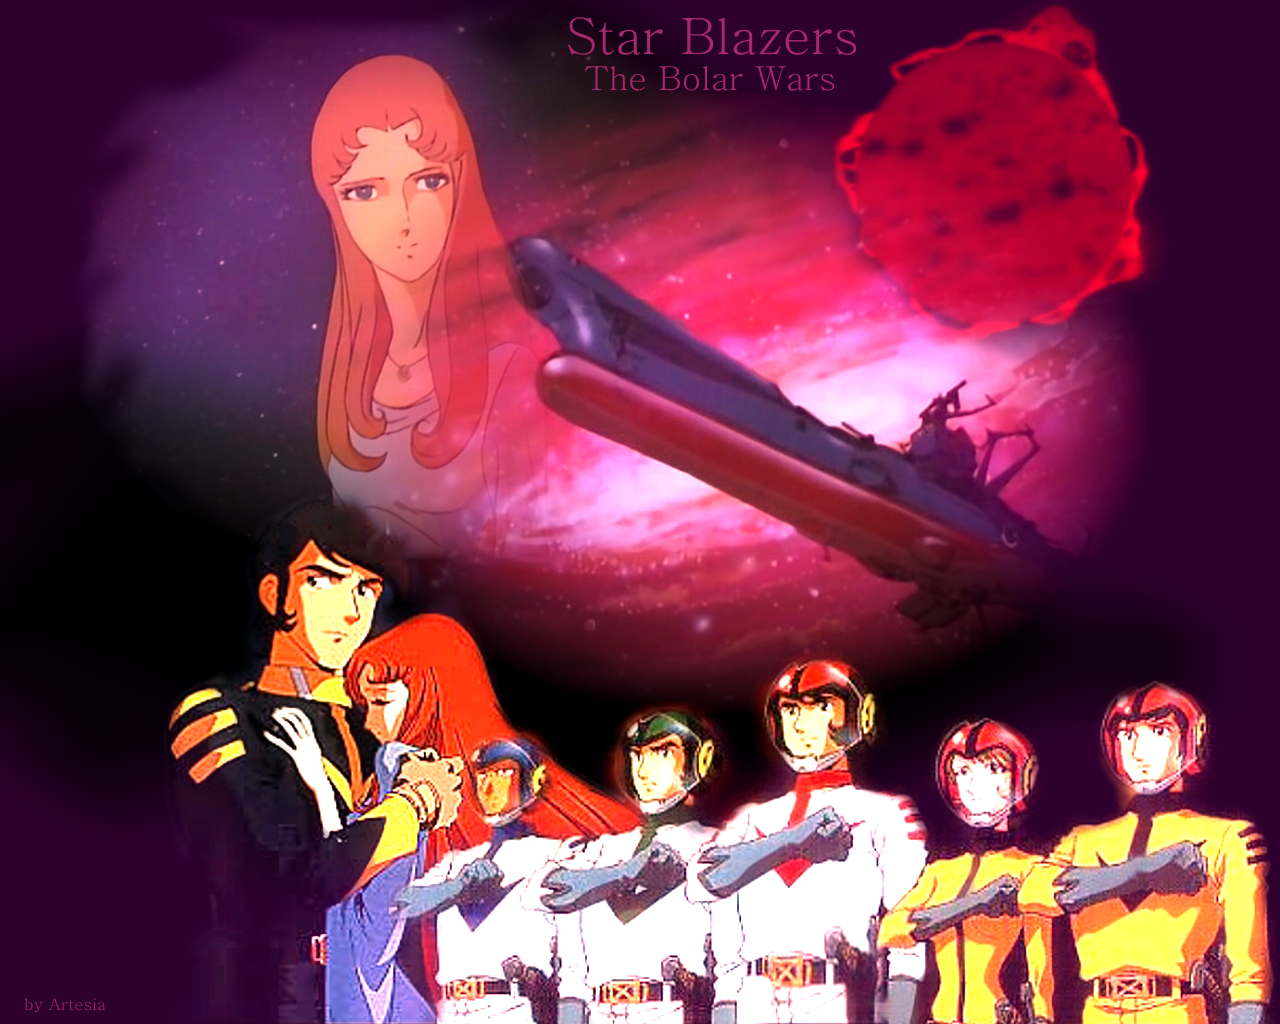 Star Blazers - The Polar Wars - Anime Wallpaper (34823401 ...